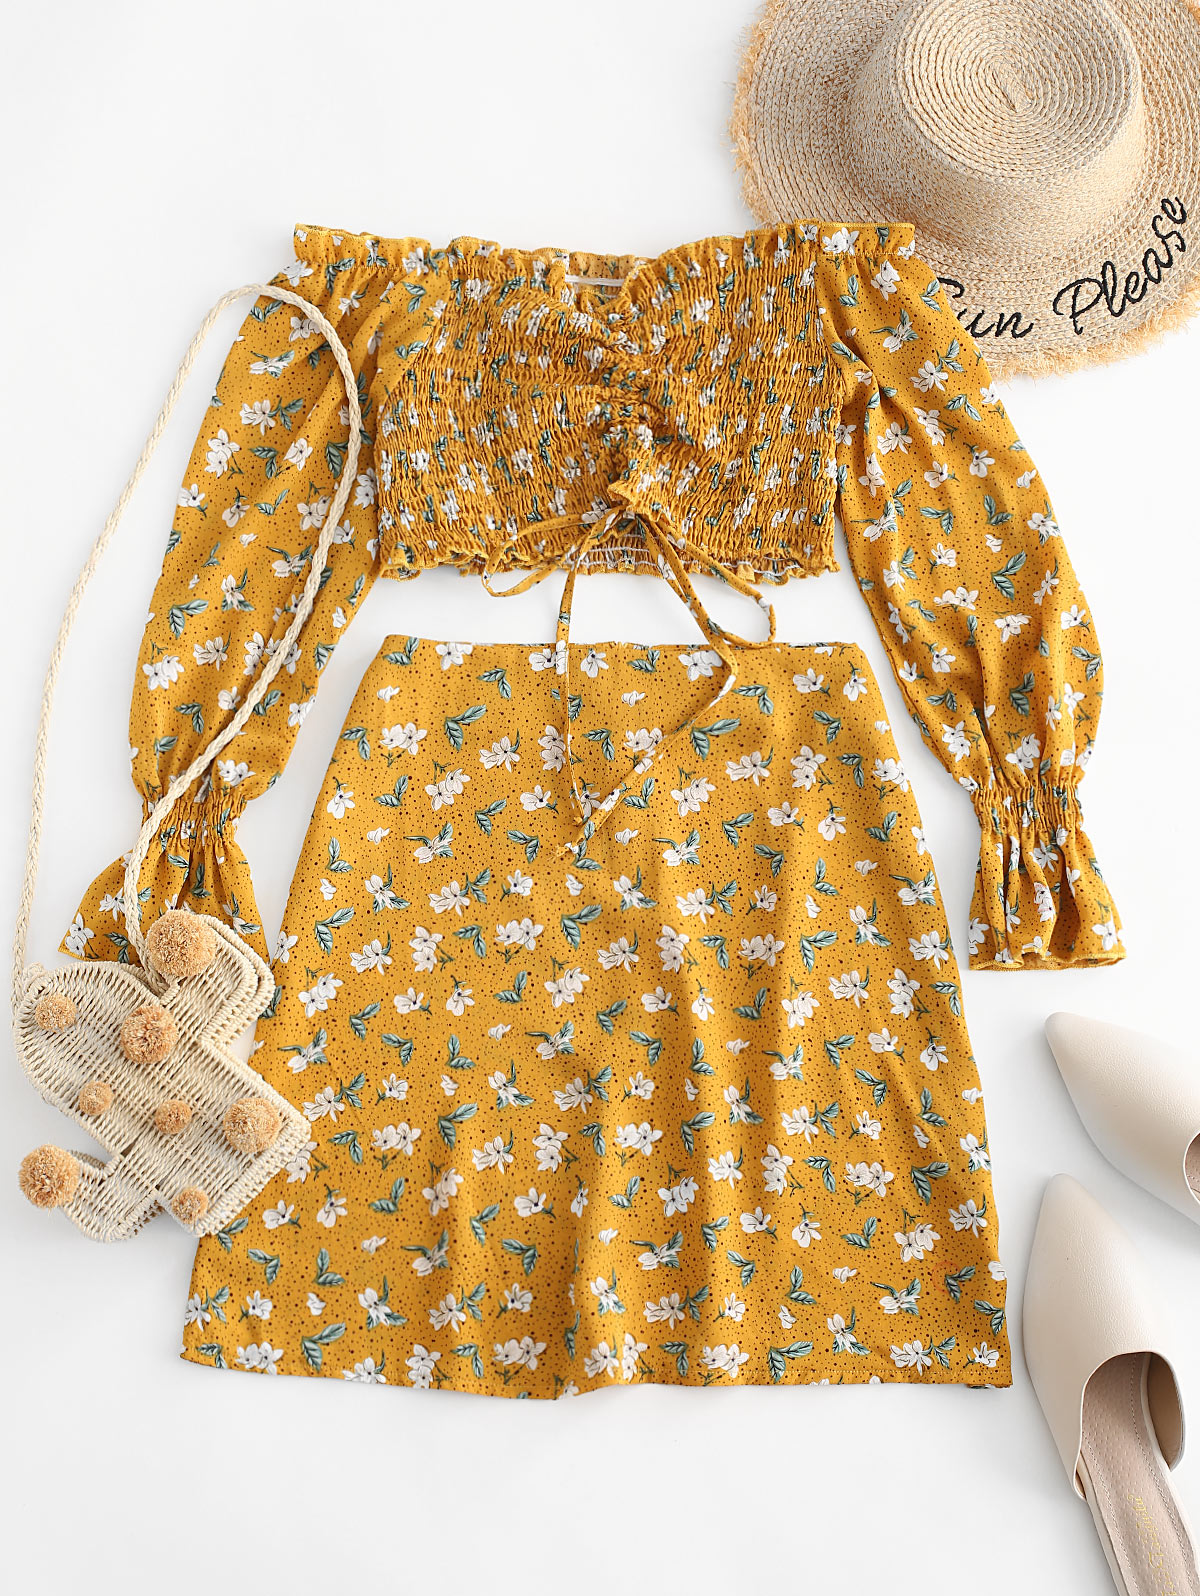 ZAFUL Floral Smocked Cinched Ruffle Cuff Two Piece Set Off Shoulder Shirred Tie Top And Skirt Set Girls Zipper Fly Women's Sets